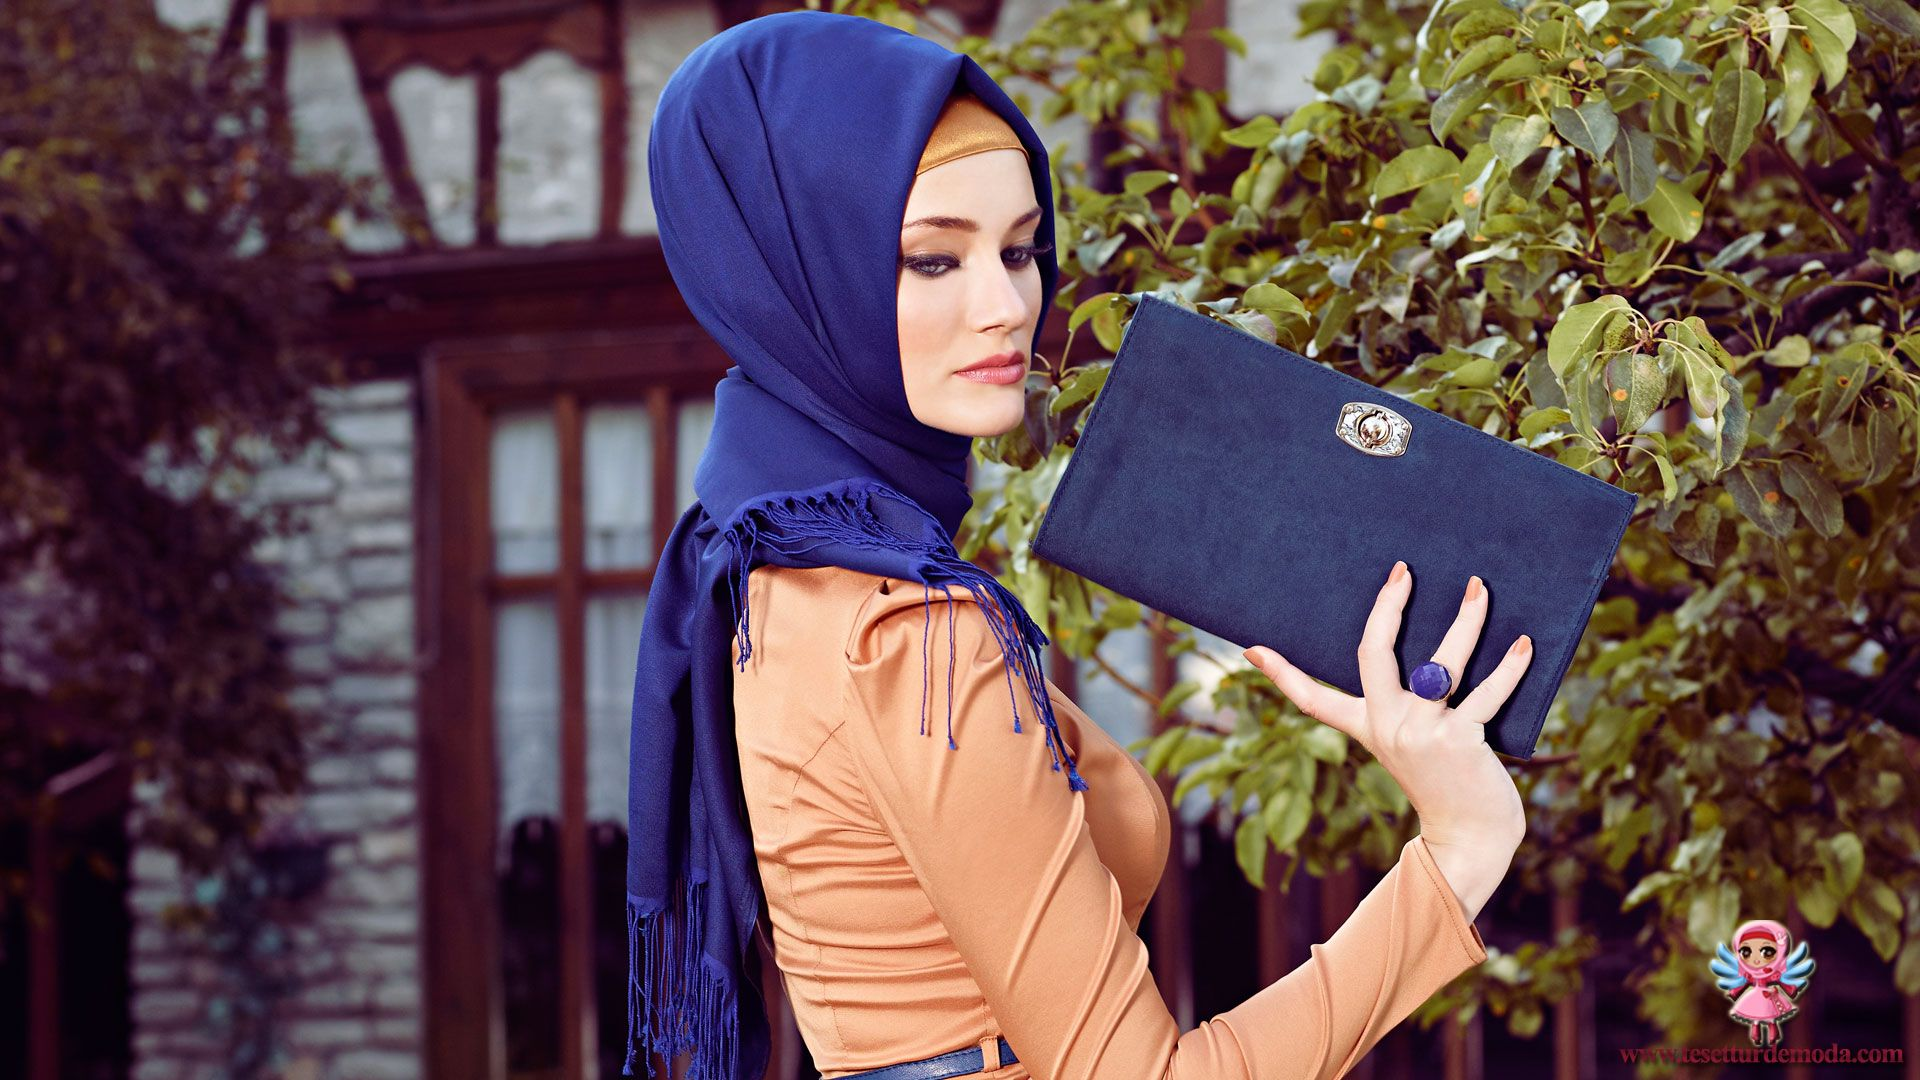 Check our stylish and attractive Islamic fashion collection